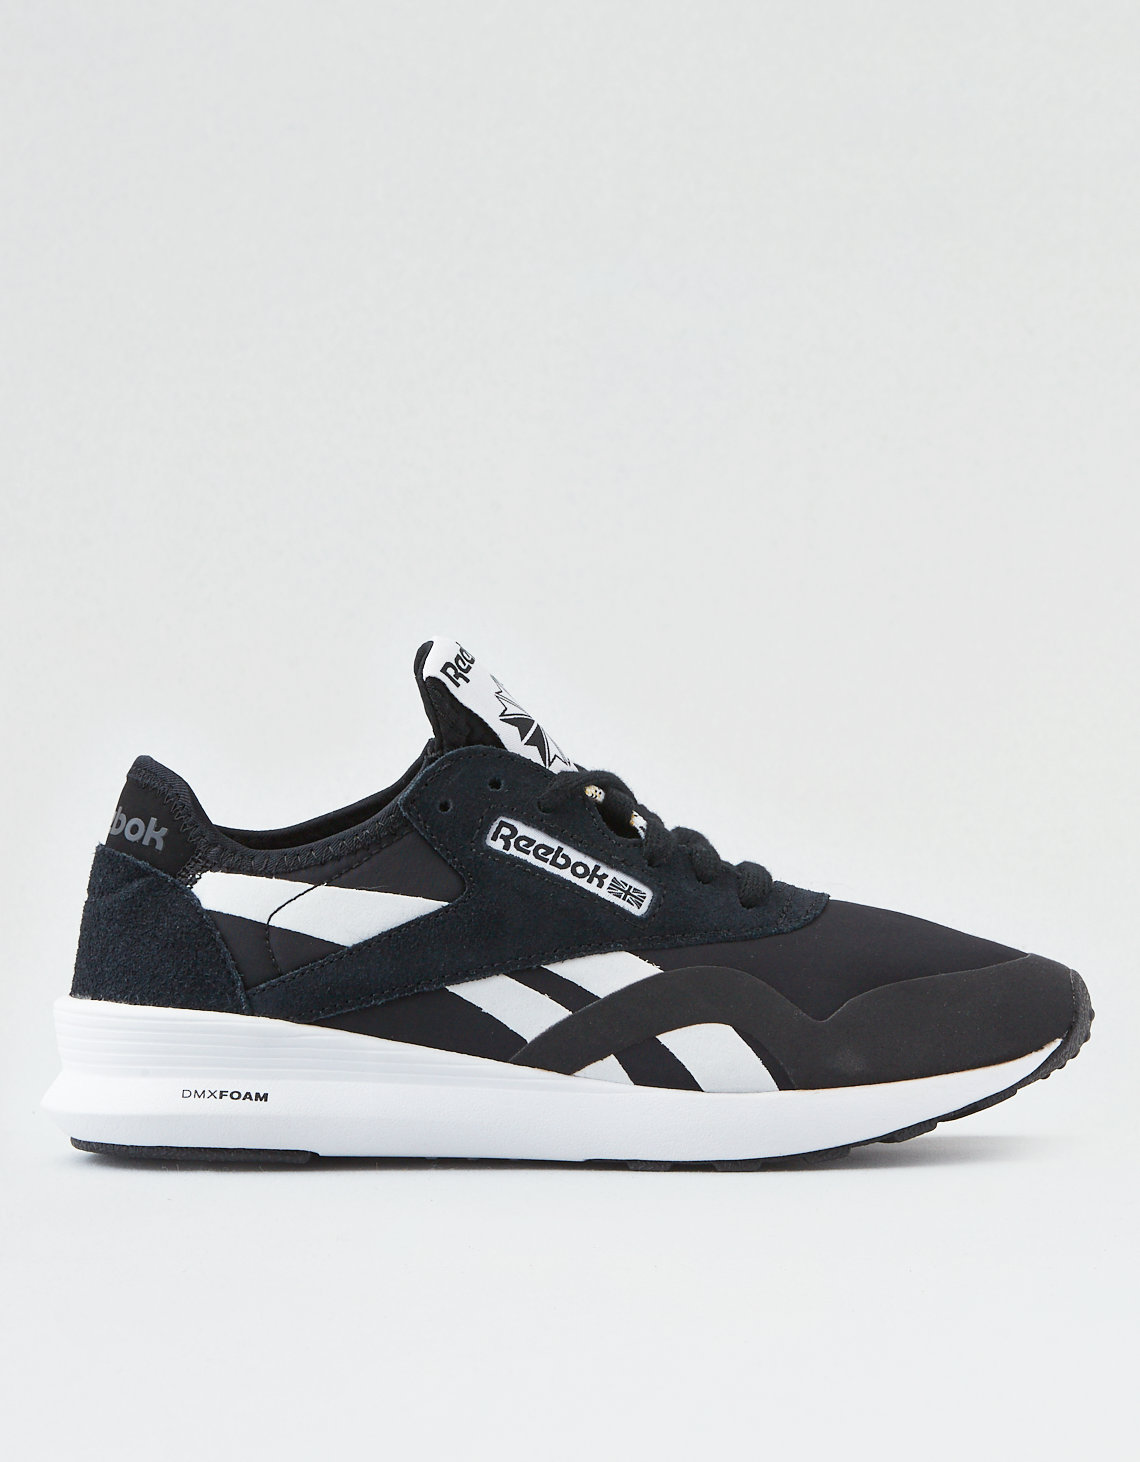 e66733ddd76f71 Reebok Classic Nylon SP Sneaker. Placeholder image. Product Image